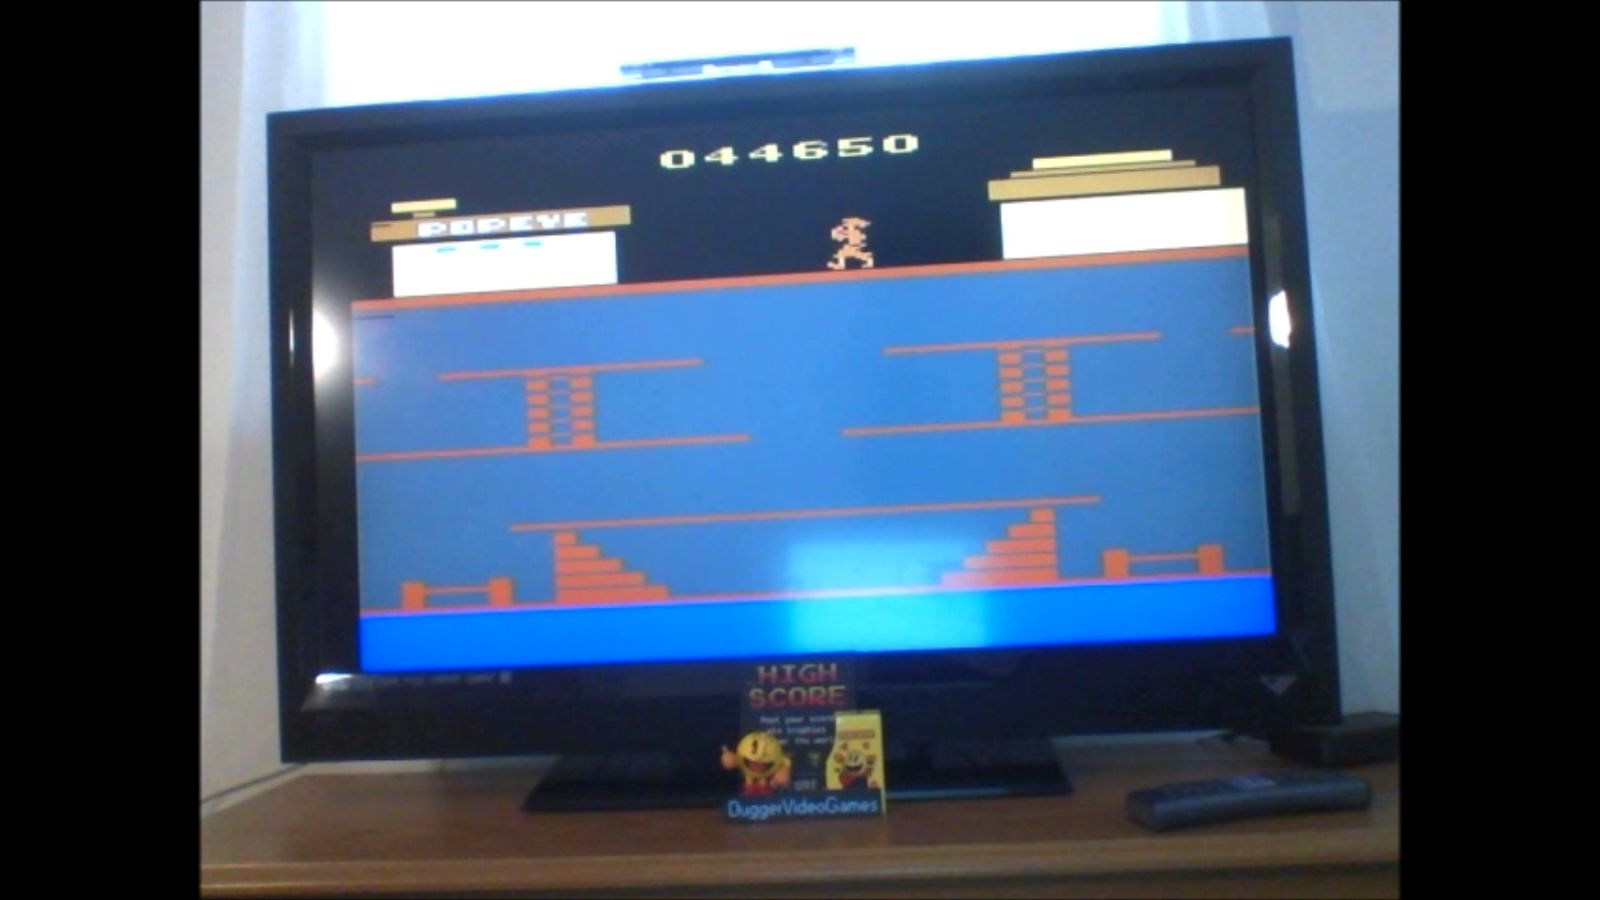 DuggerVideoGames: Popeye (Atari 2600 Emulated) 44,650 points on 2017-01-22 12:48:23